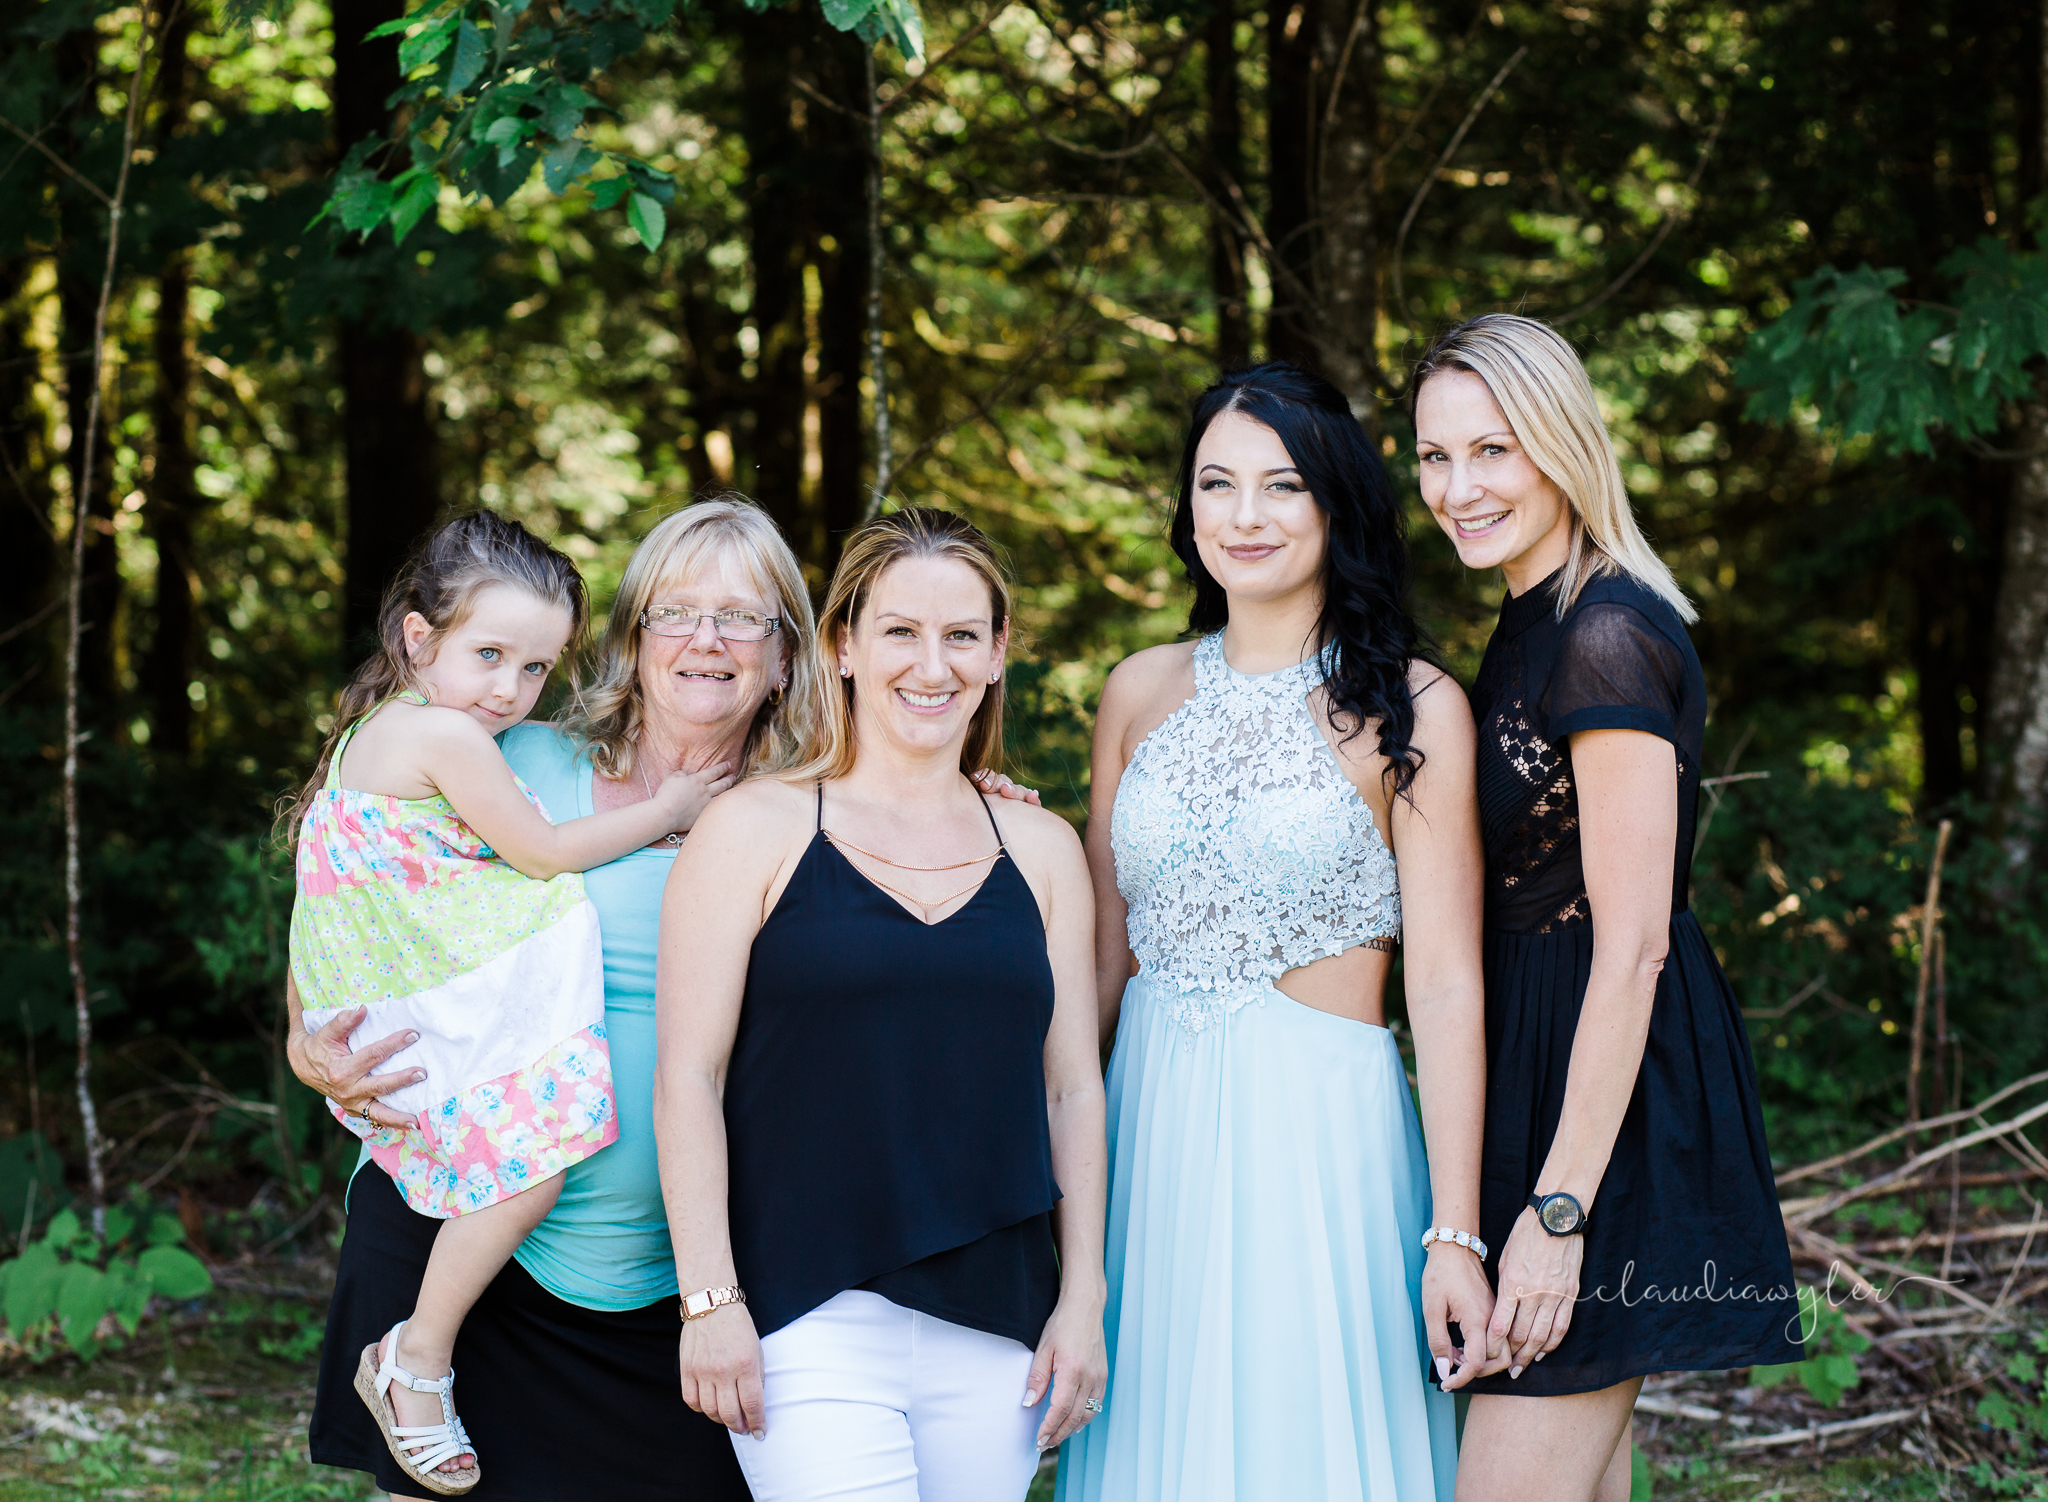 Chilliwack, British Columbia| Prom Photographer| Teen Photographer | Prom Graduation Senior Session| Claudia Wyler Photography and Films